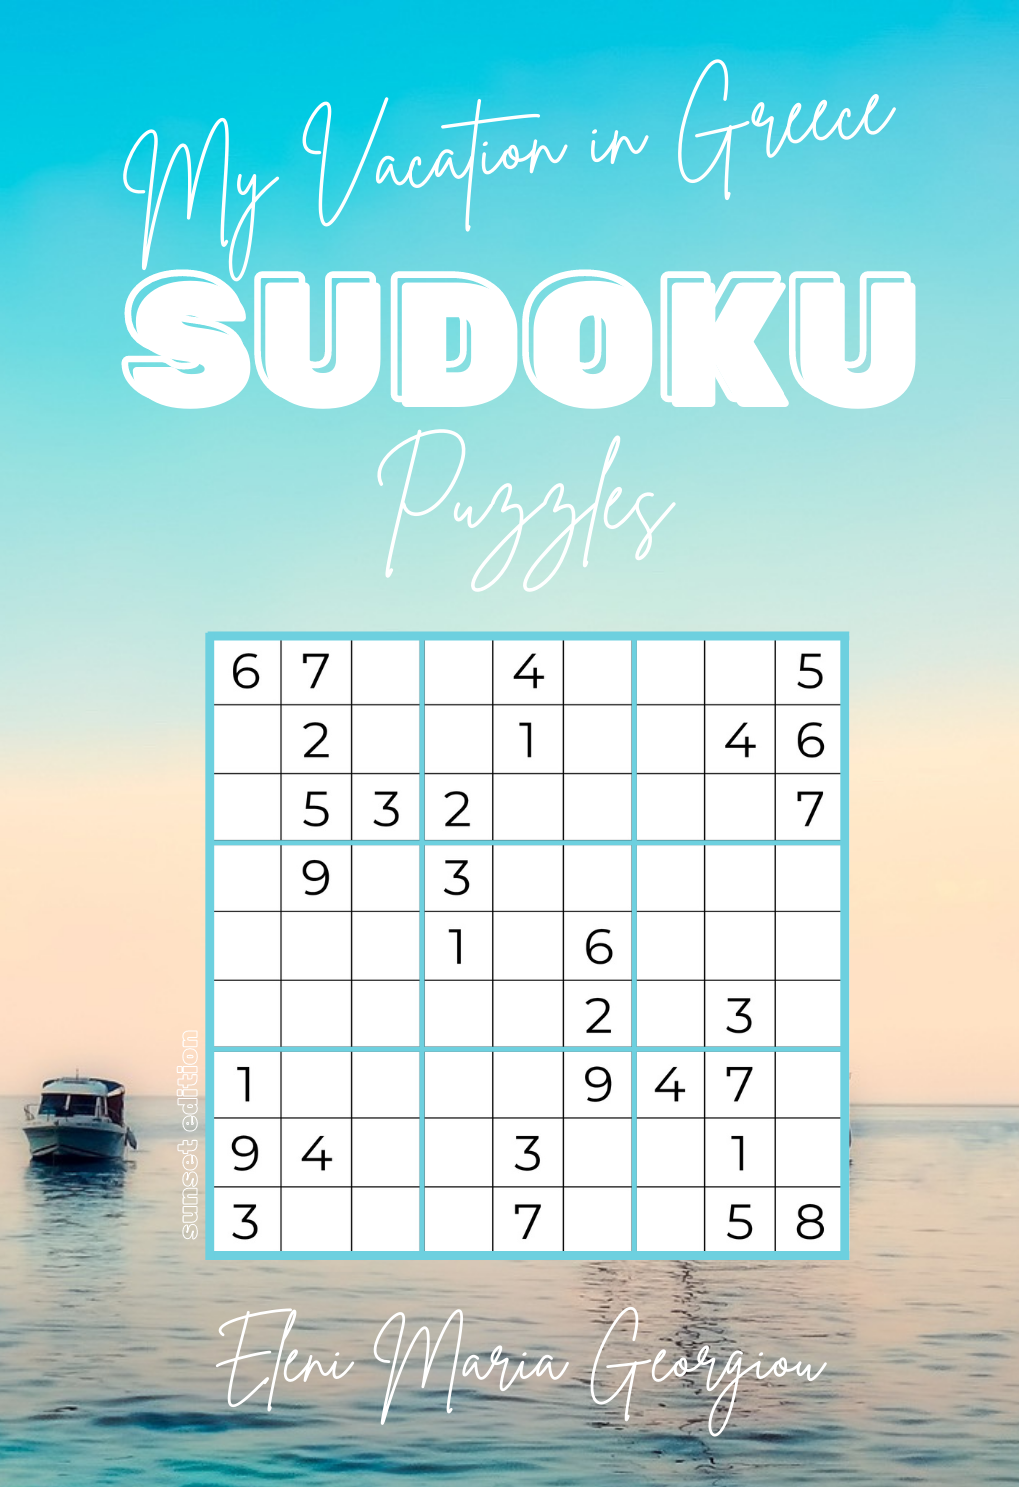 My Vacation in Greece SUDOKU Puzzles: Sunset Edition